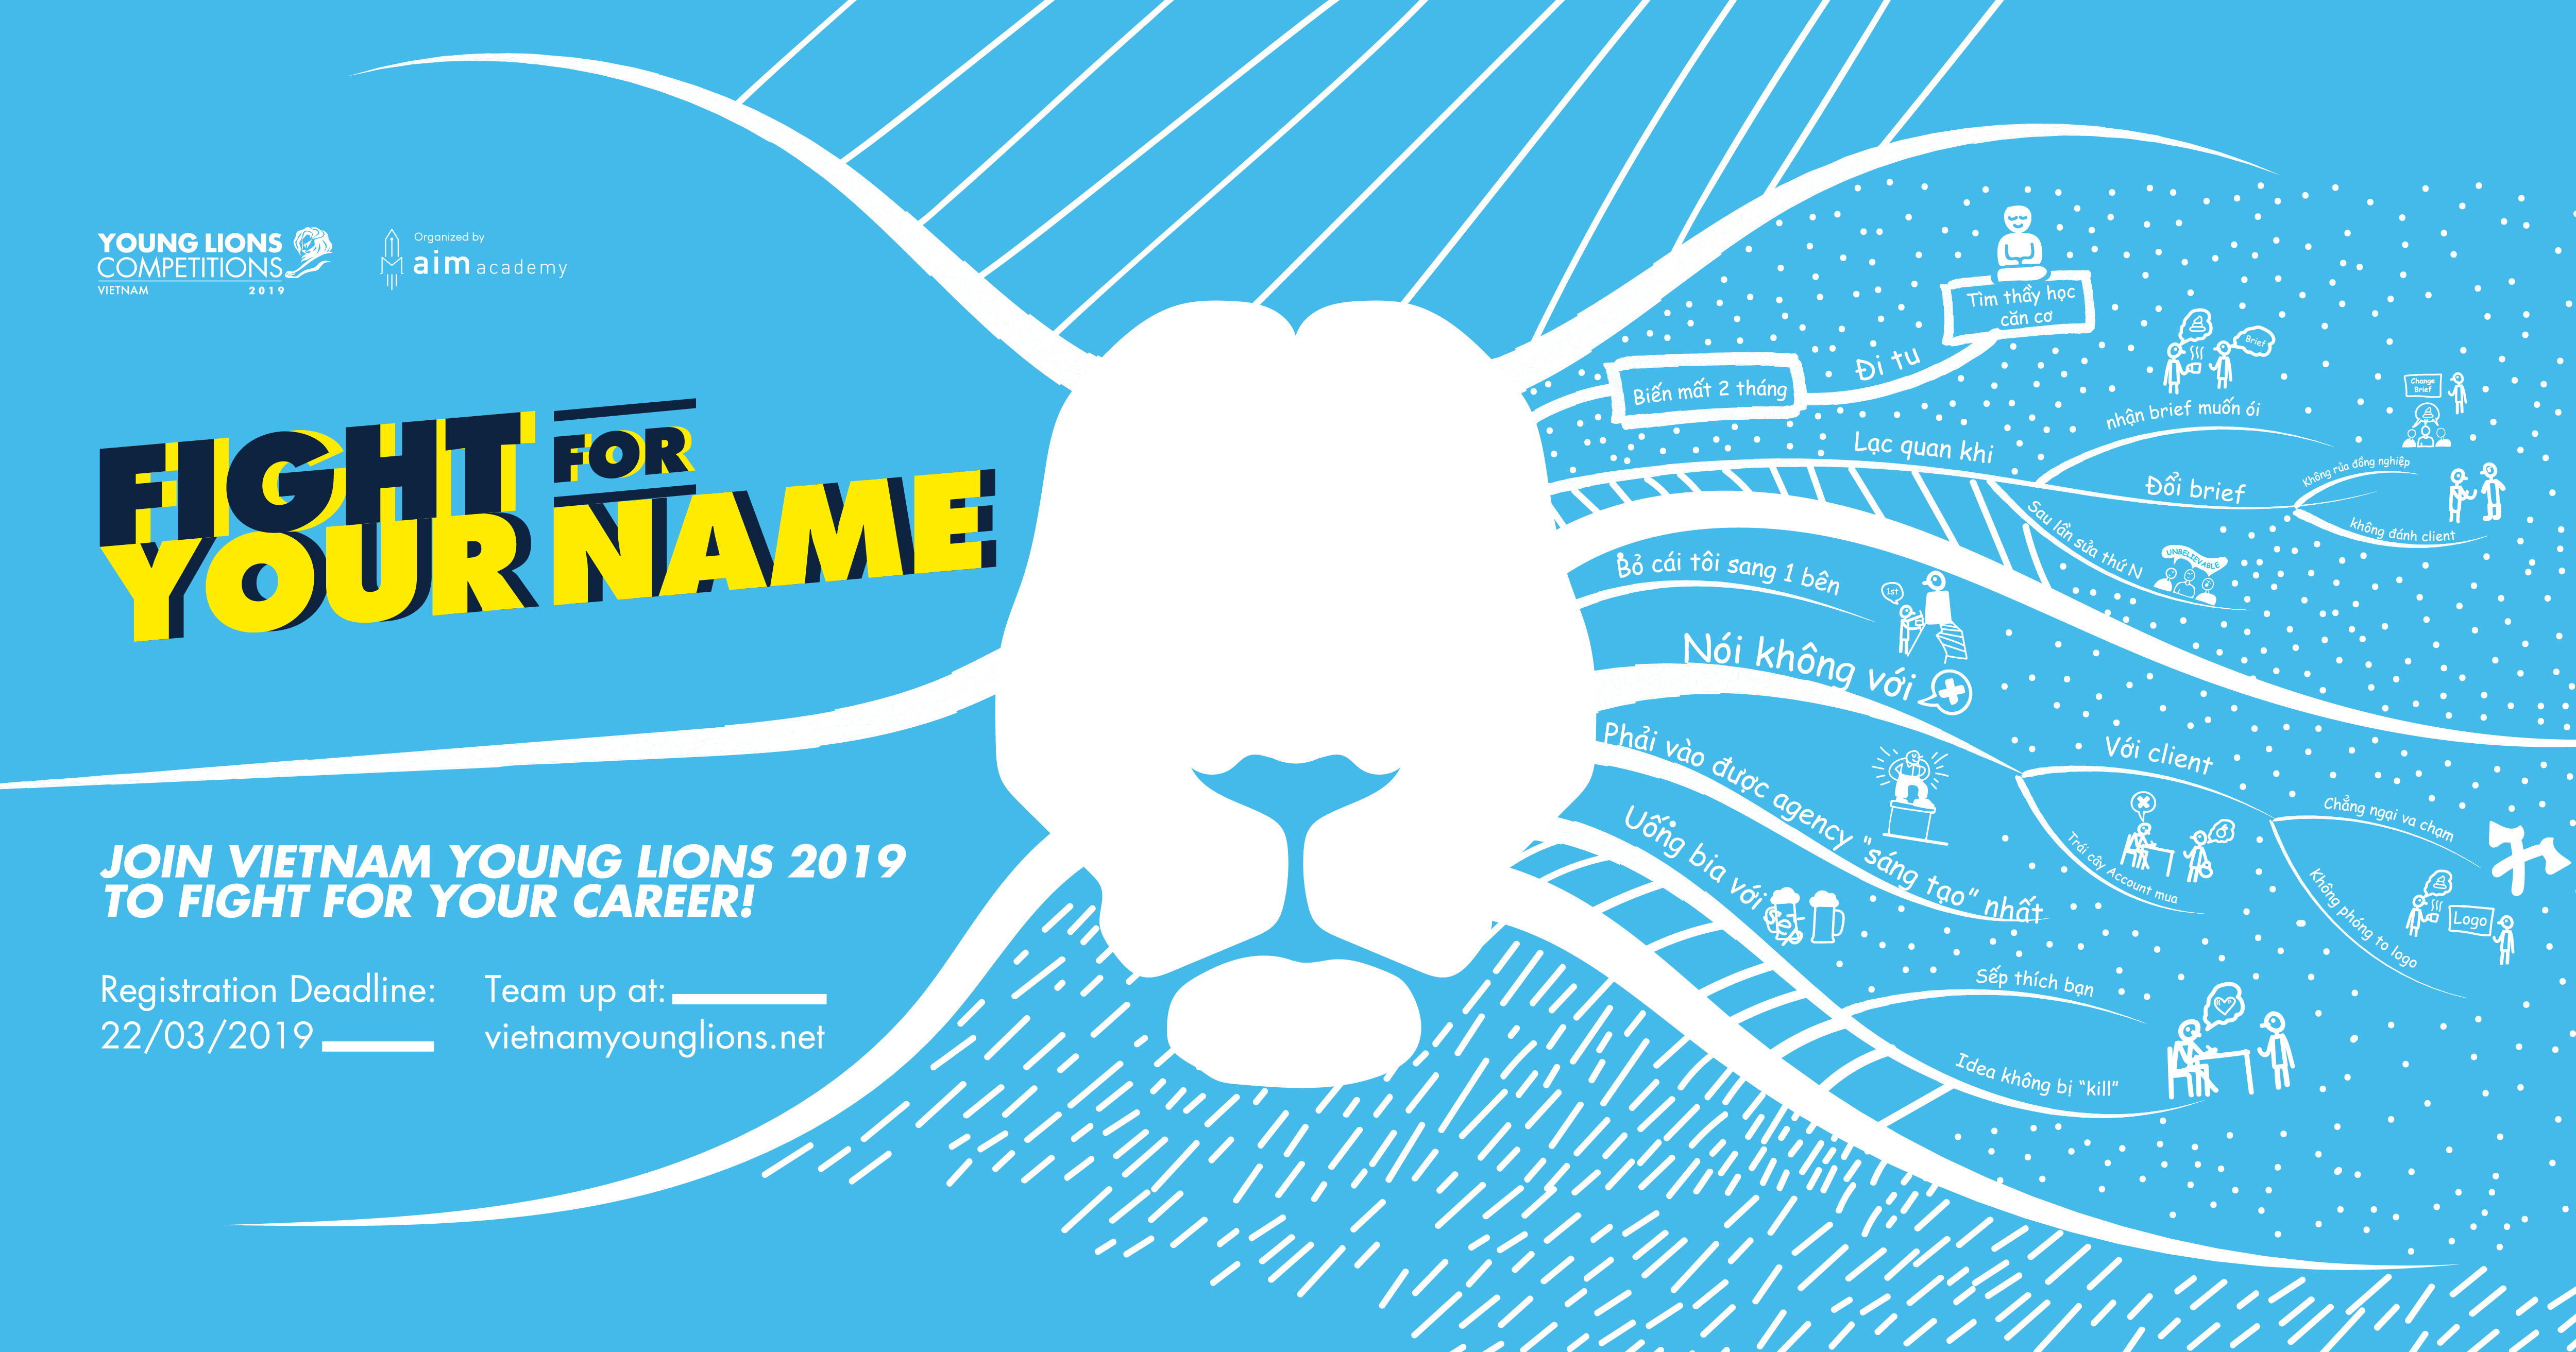 rgb_creative_vietnam_young_lions_2019